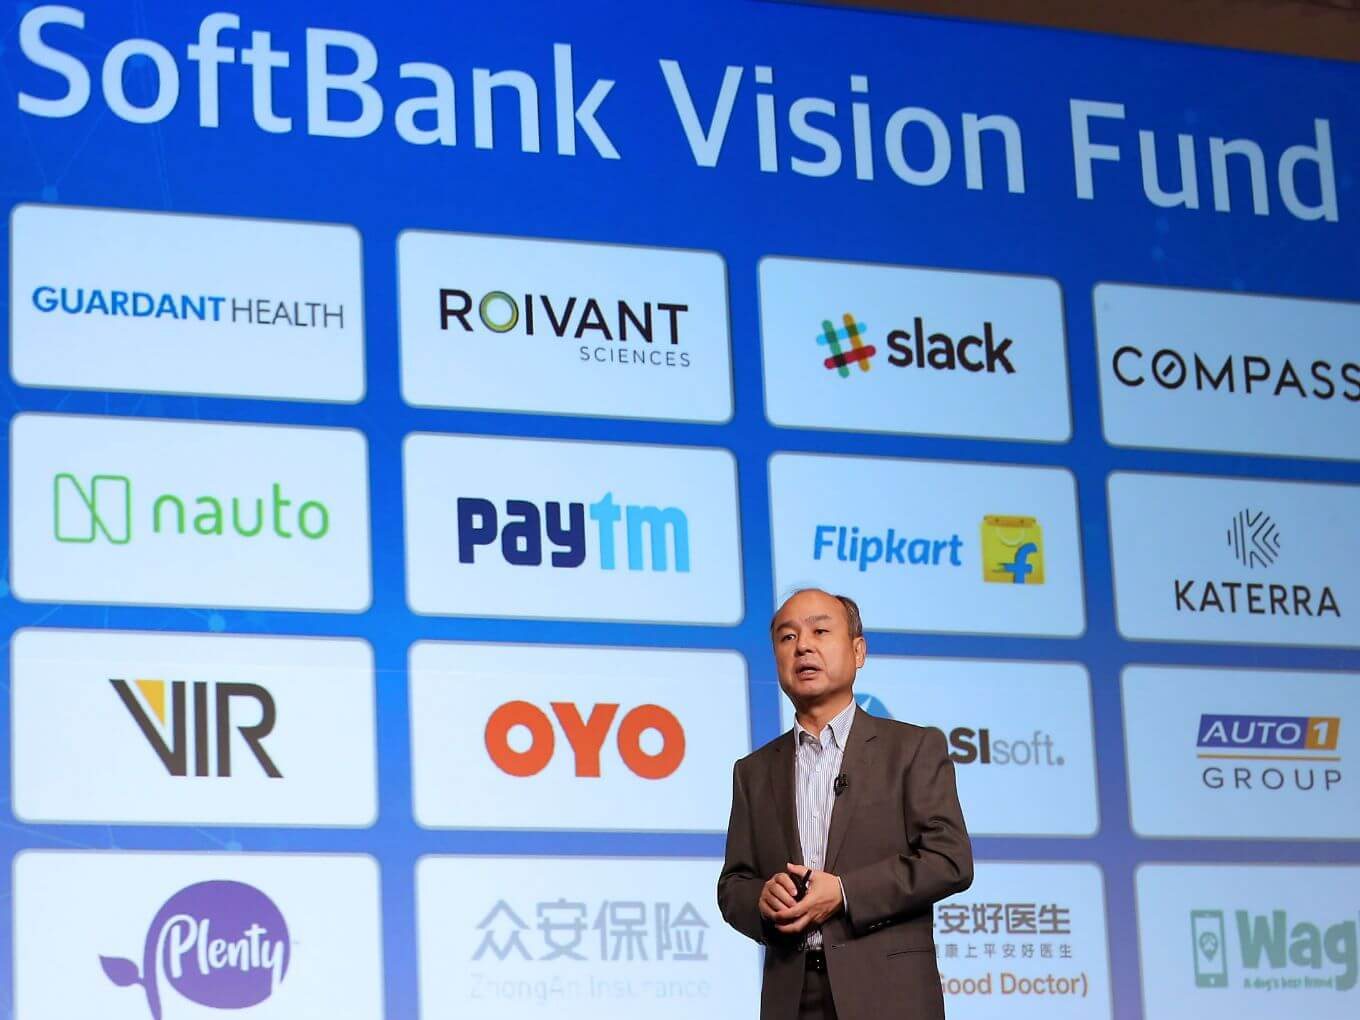 SoftBanks New Venture Capital Fund to help Early Startups